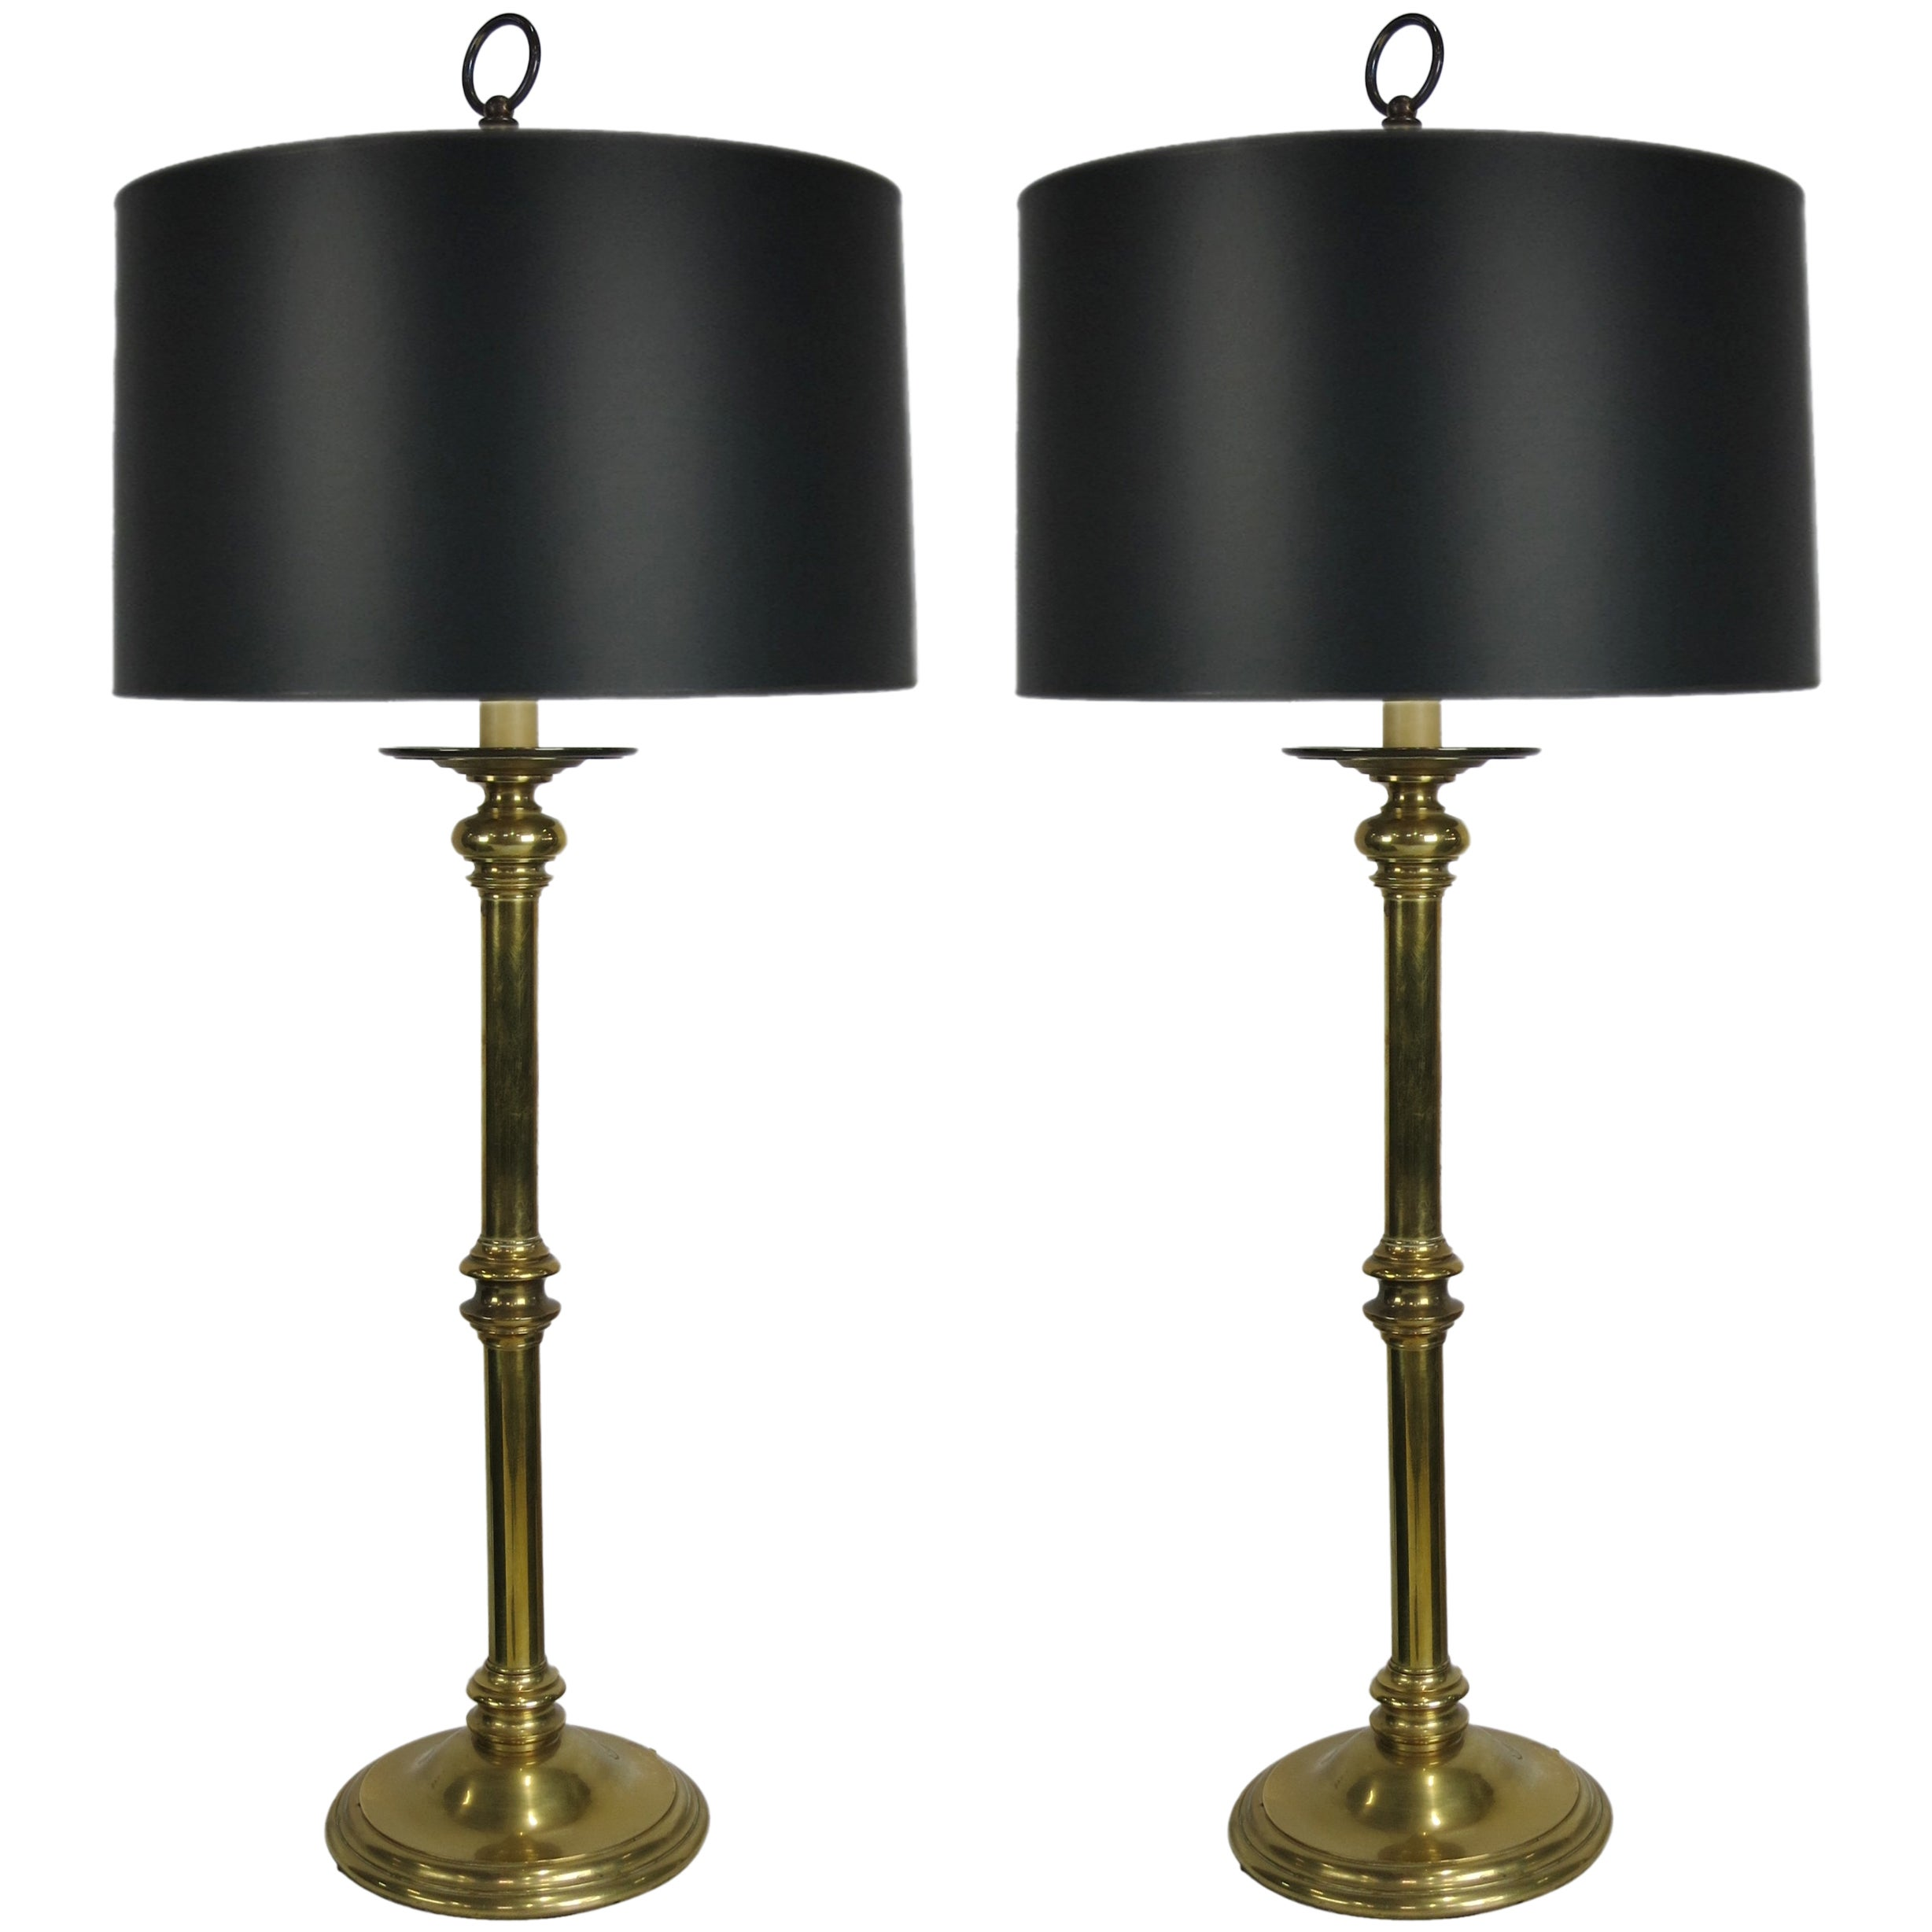 Pair of Brass Candlestick Lamps by Paul Hanson